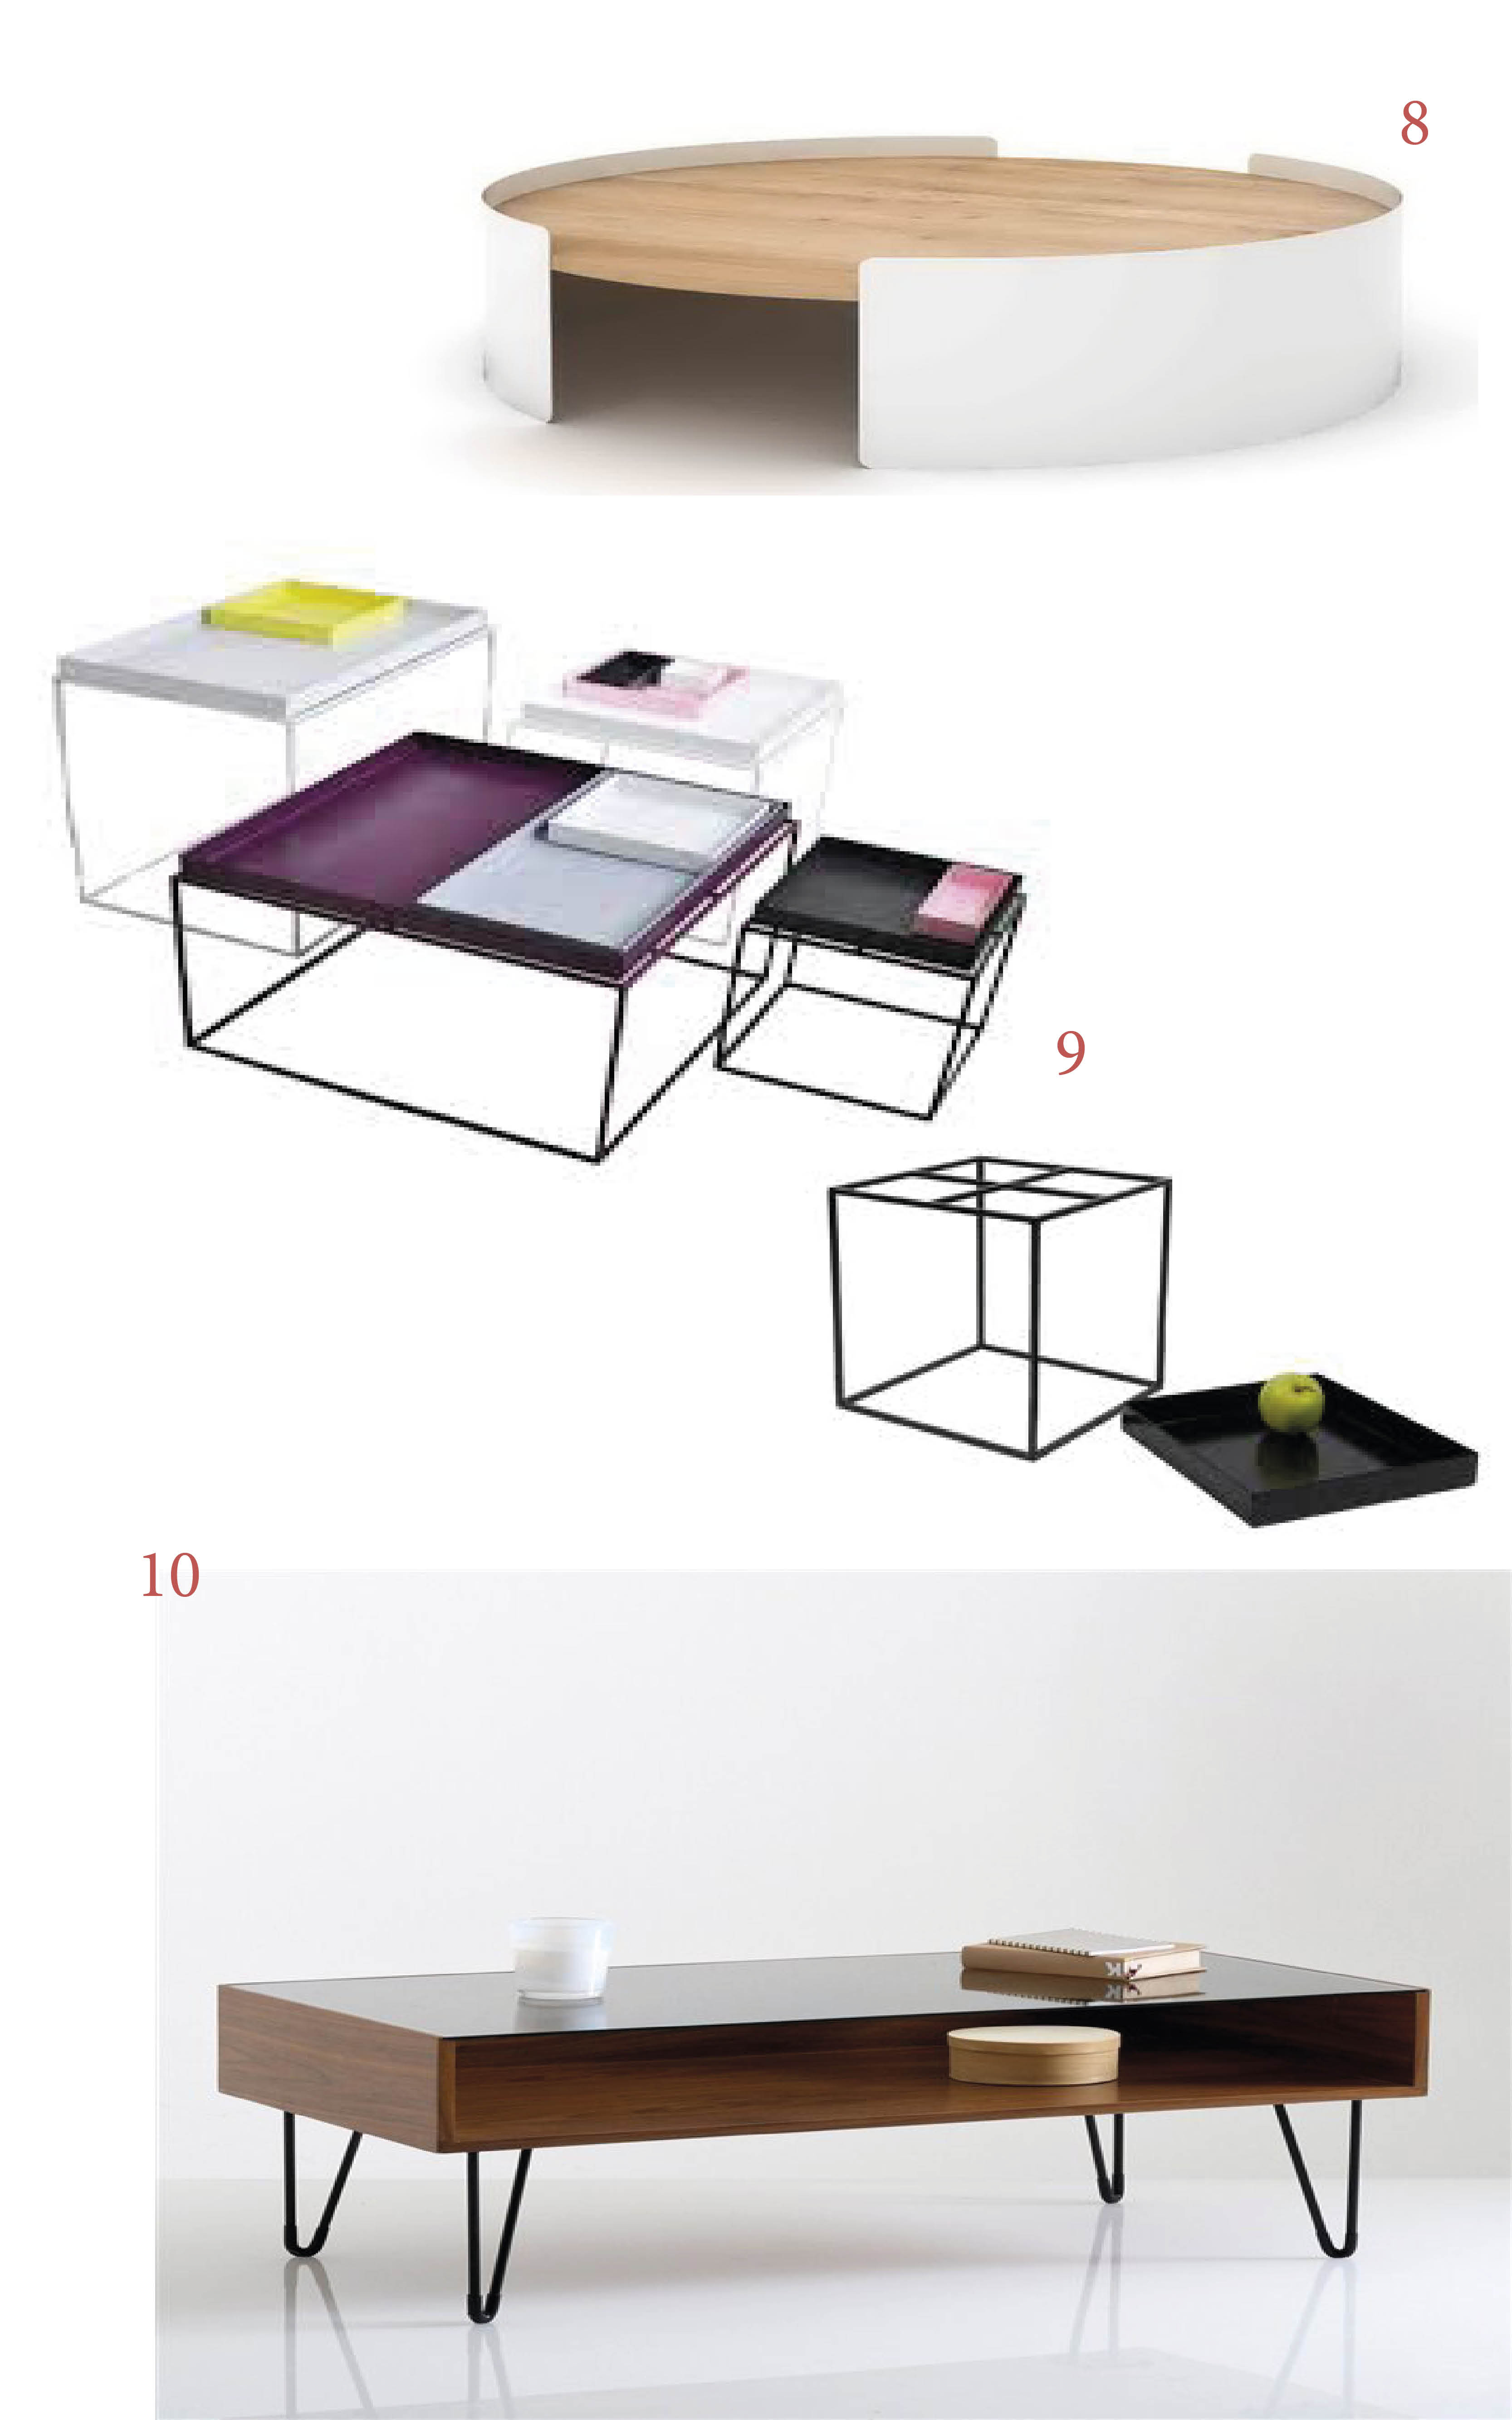 table basse salon en verre design id es de d coration int rieure french decor. Black Bedroom Furniture Sets. Home Design Ideas